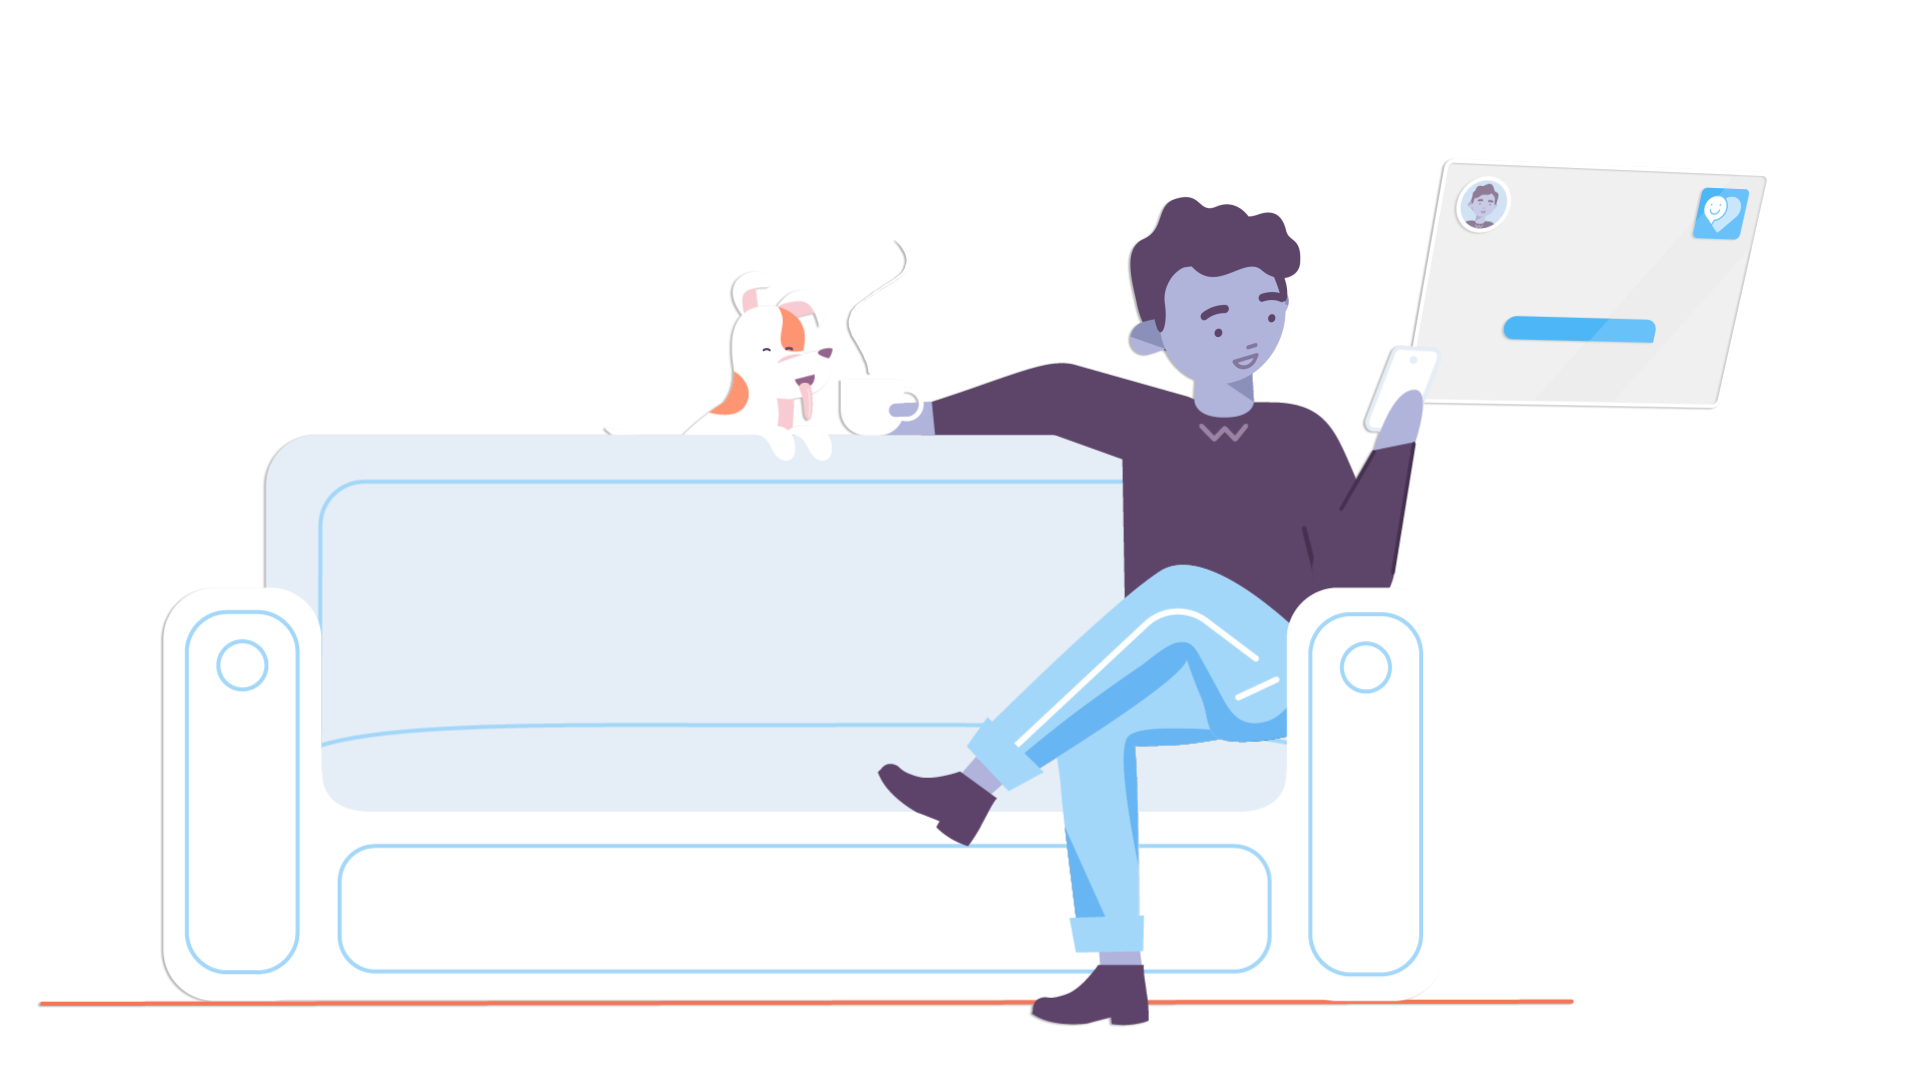 26-Patient-chatting-on-App-from-sofa-transparent-background-1